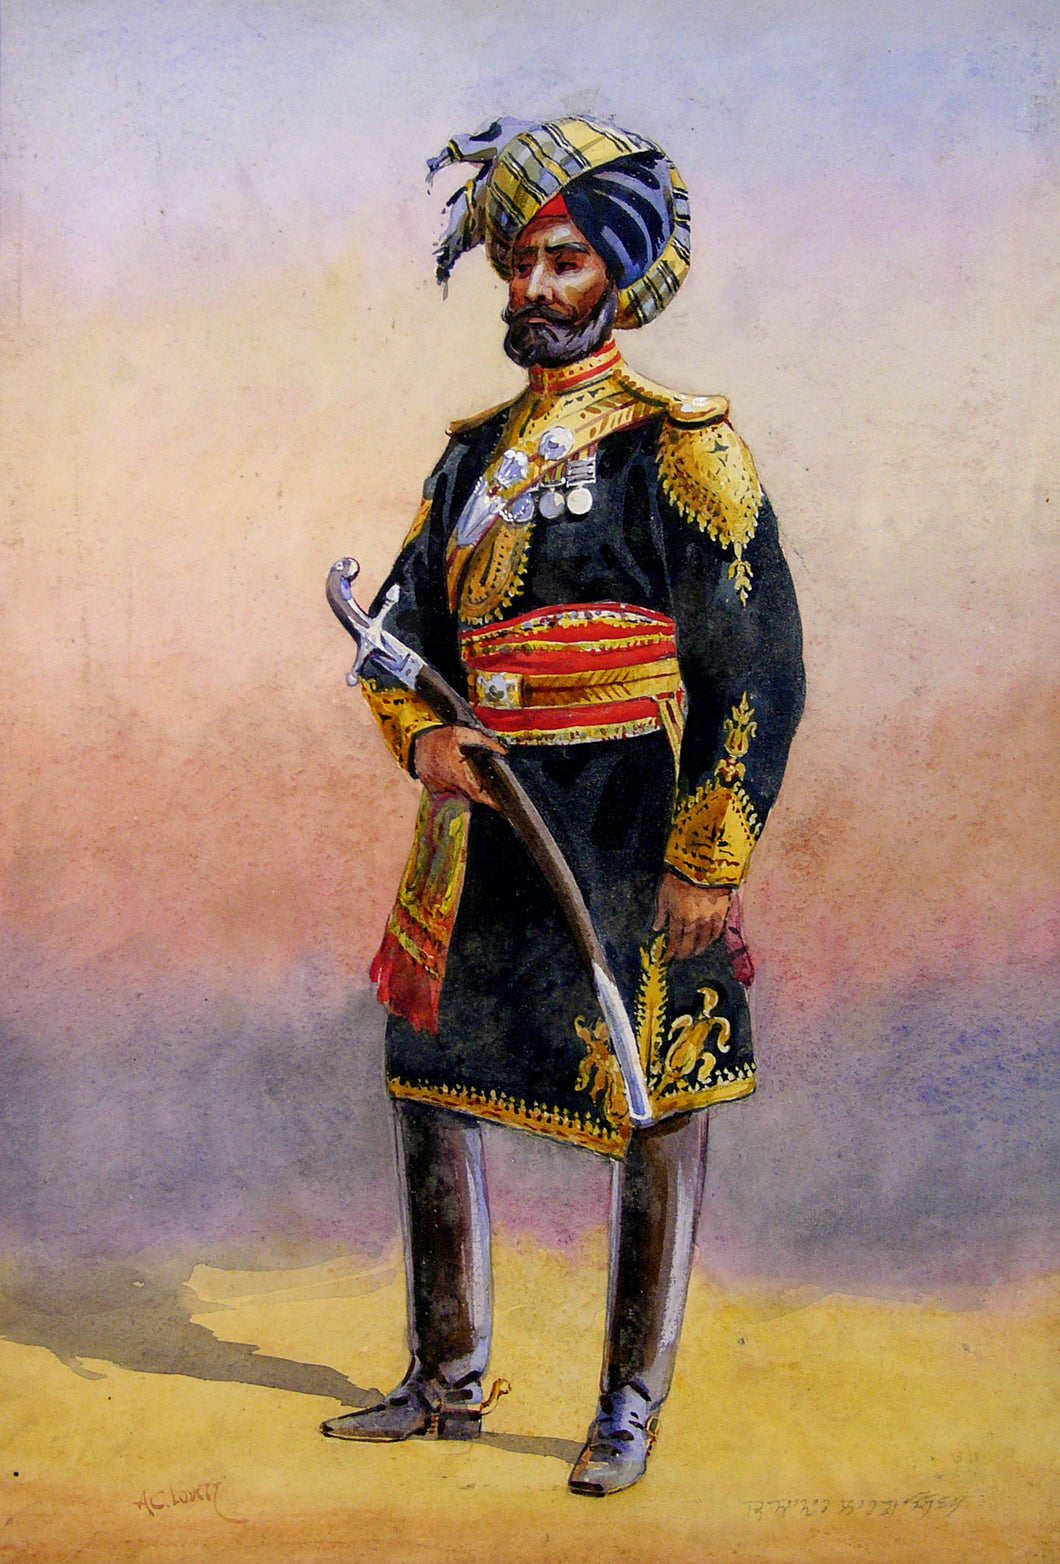 Indian Officer of 11th King Edward's Own Lancers (Probyn's Horse) by Major A.C. Lovett, cCirca 1910